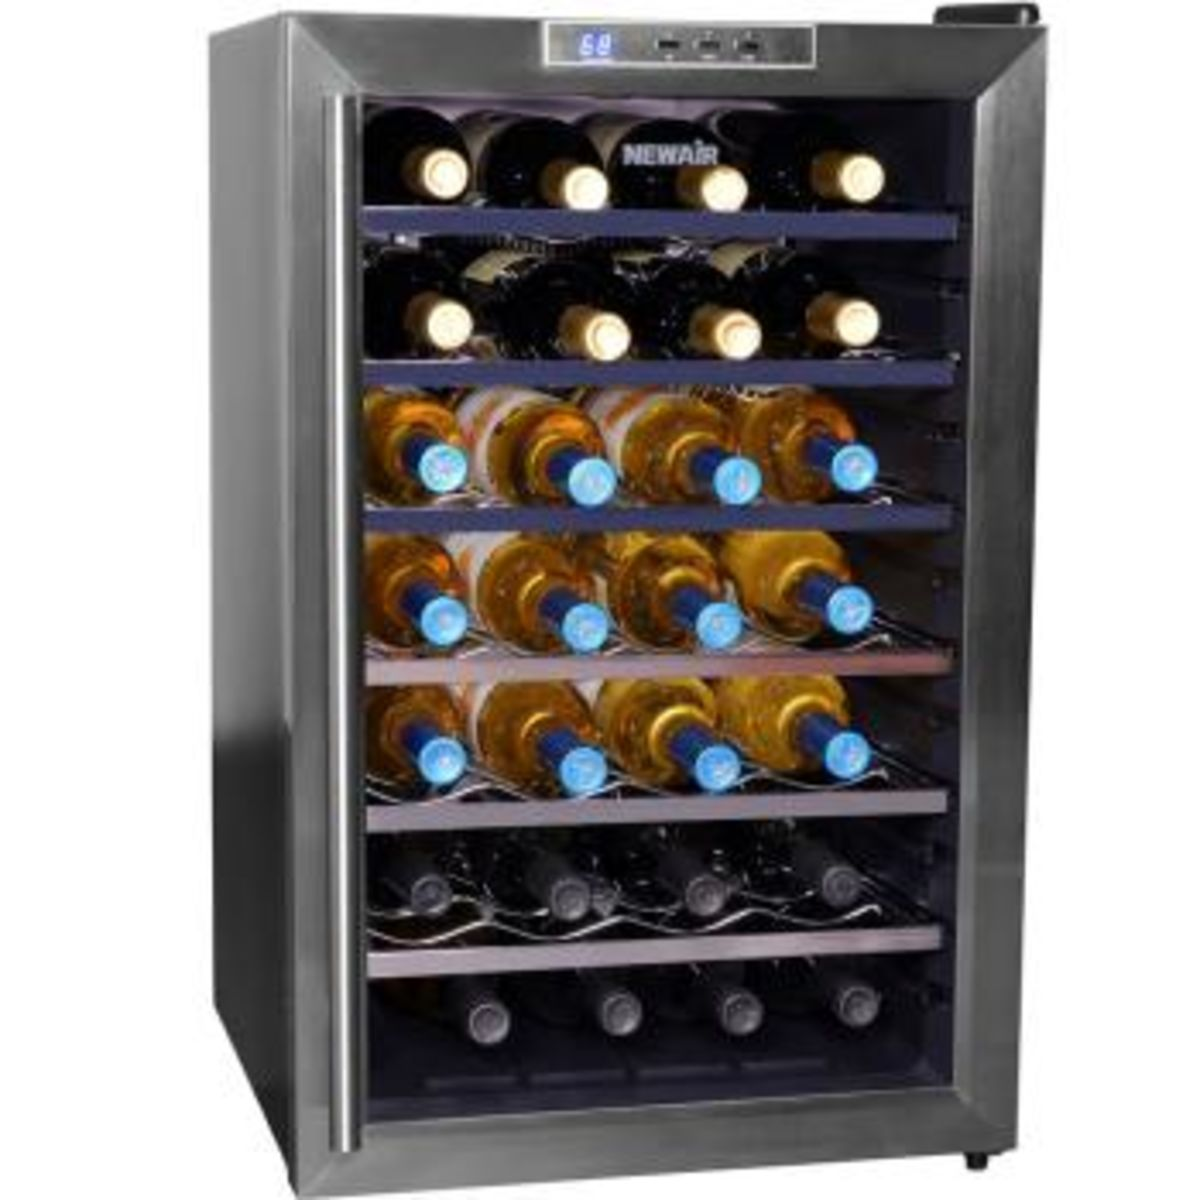 Wine Refrigerator Reviews >> Best Quiet Wine Refrigerator Storage Cabinets On Sale - Reviews And Ratings | A Listly List